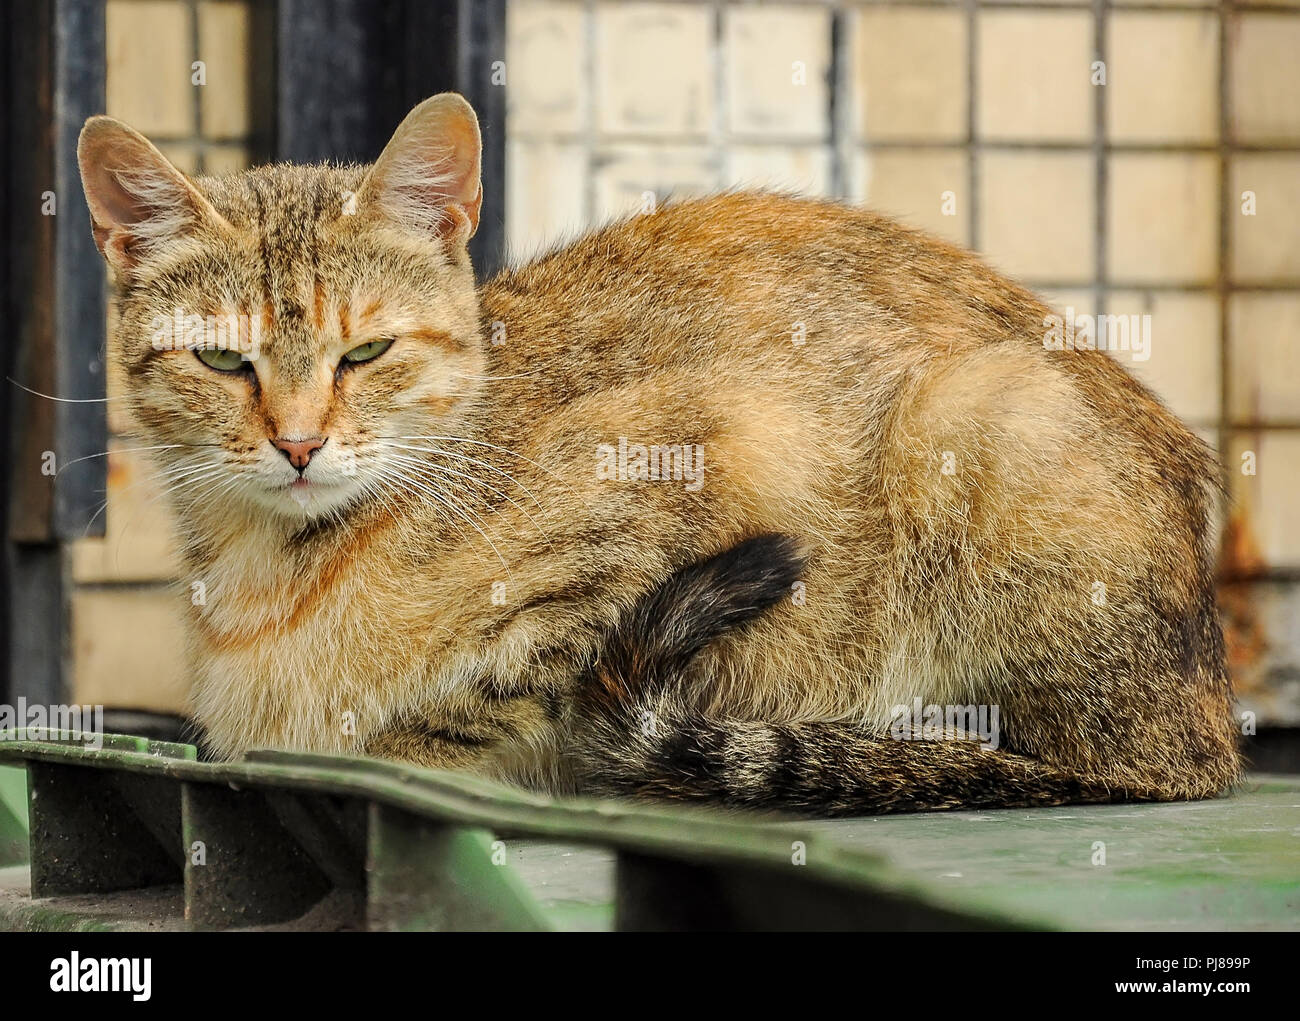 A cat living in the city in the basement of a multistory residential building. A street cat. - Stock Image